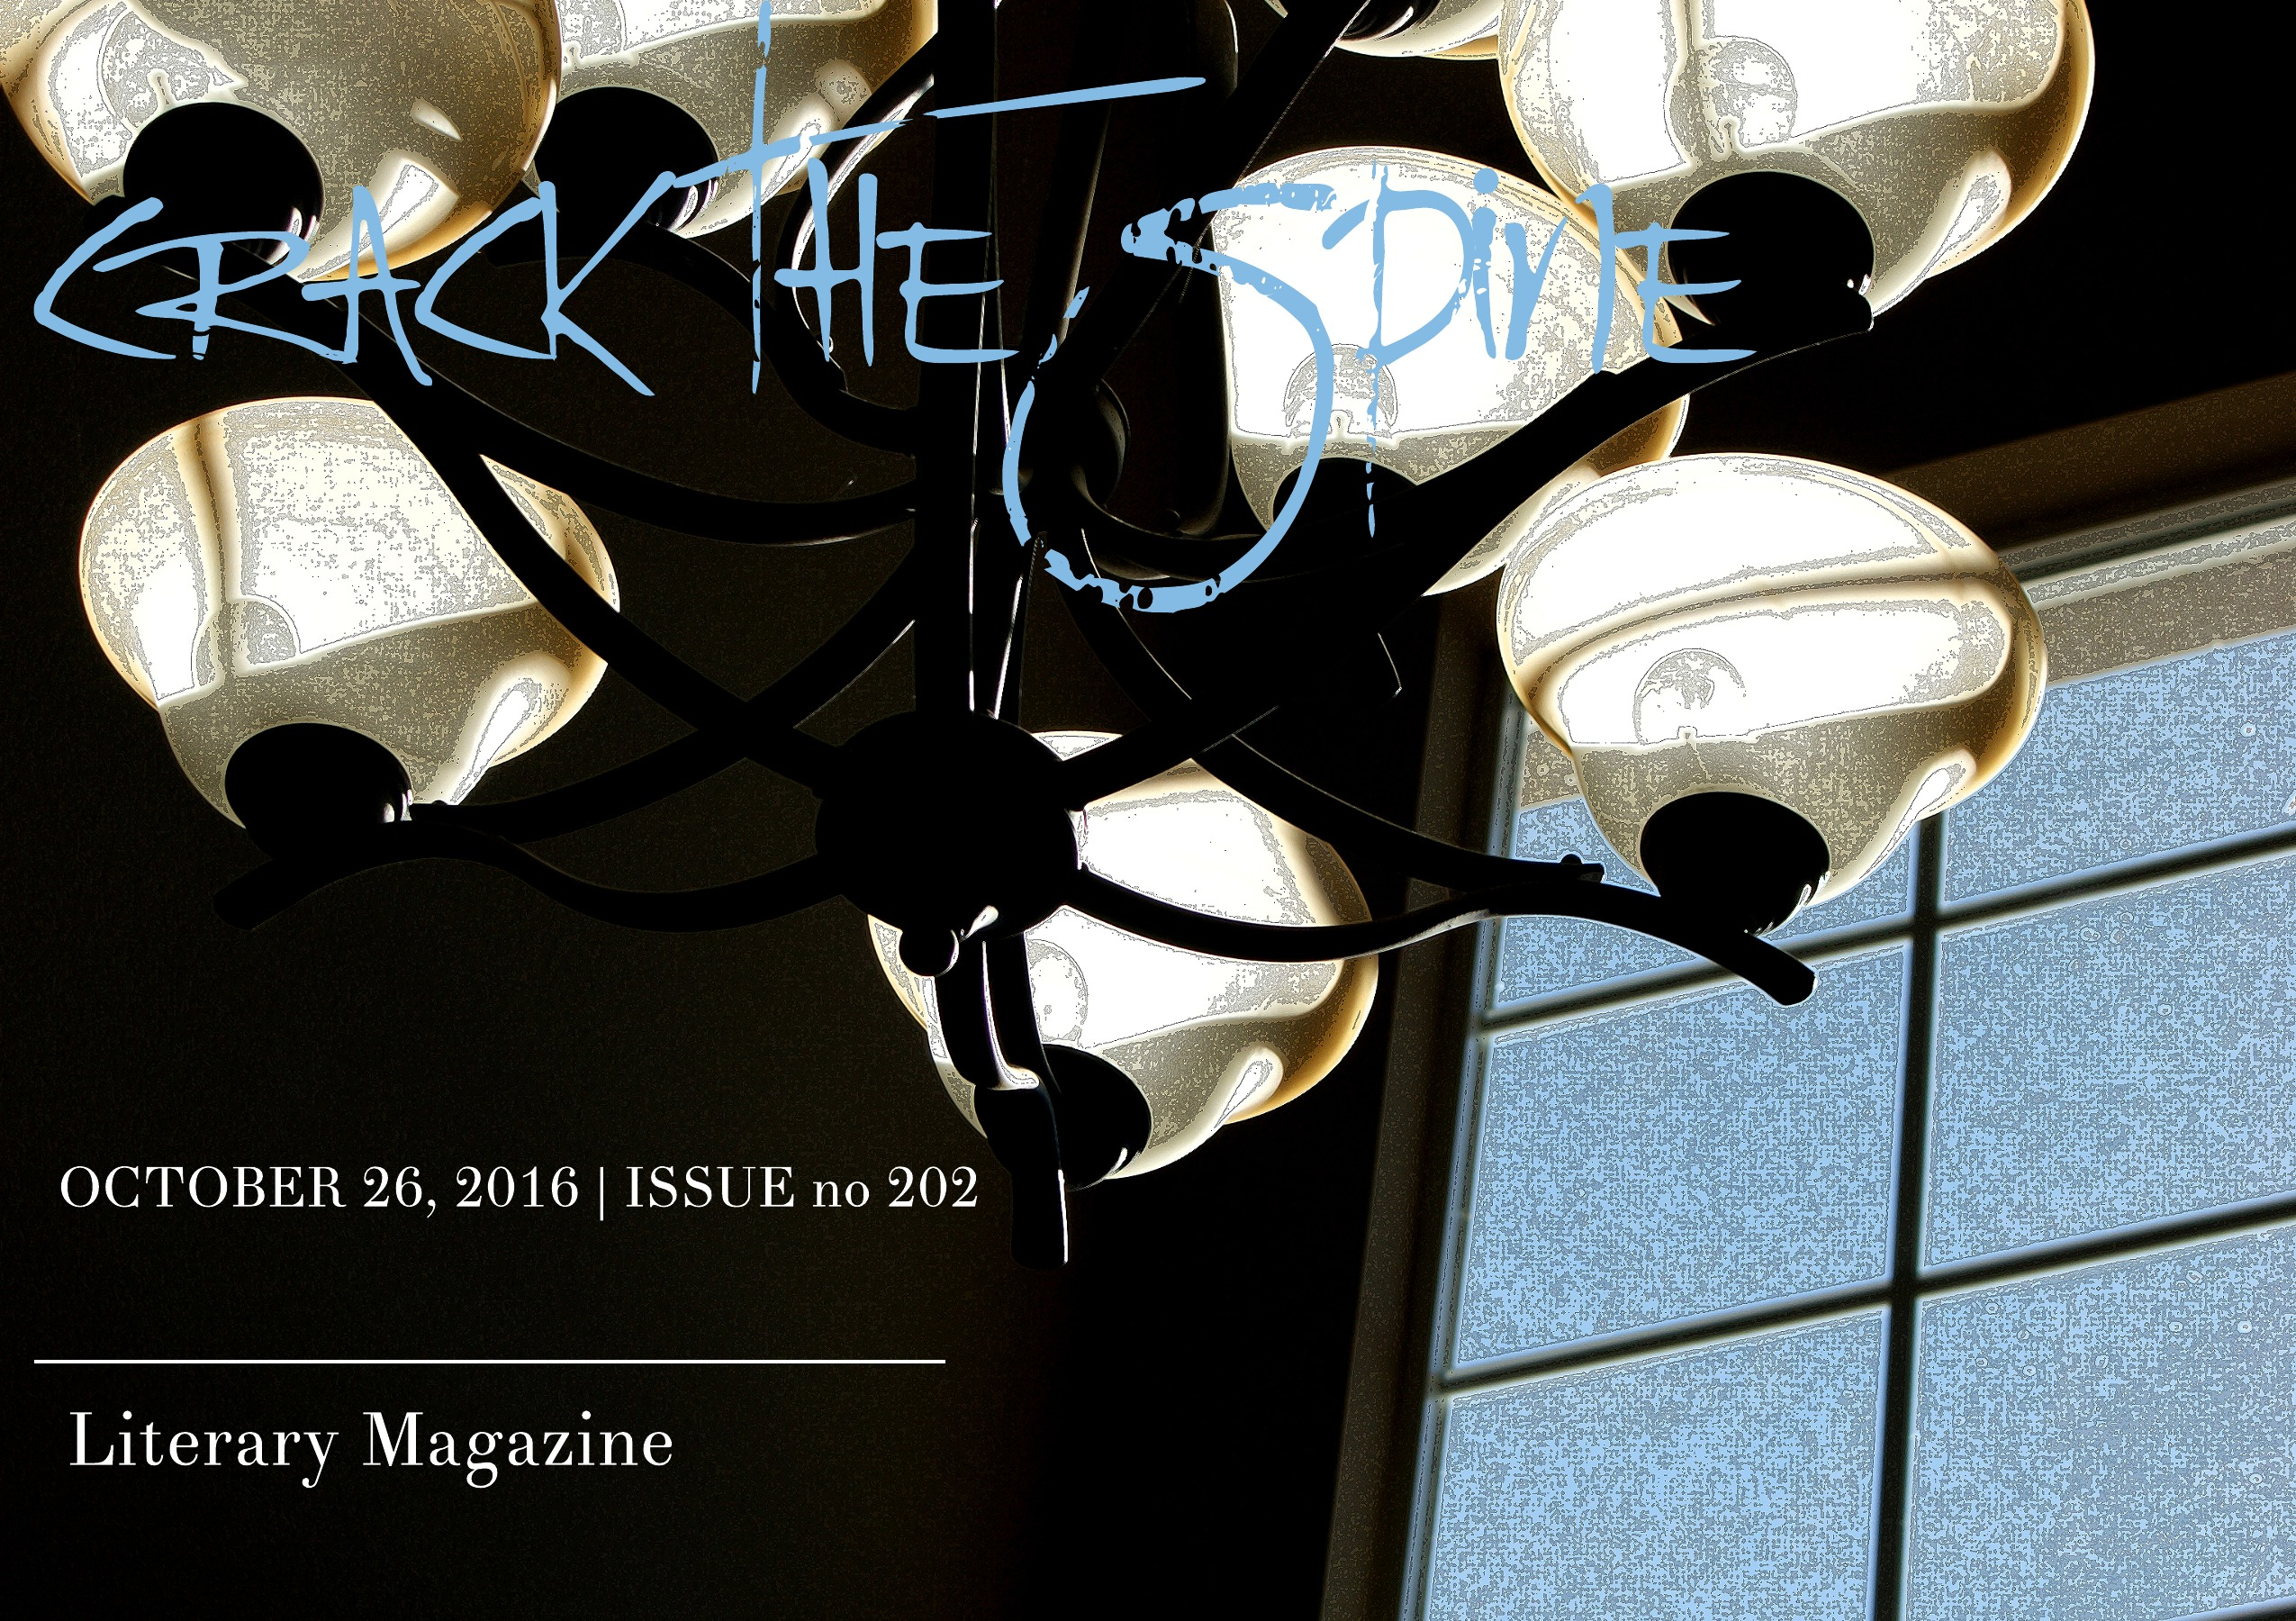 crack-the-spine-literary-magazine-issue-202-cover